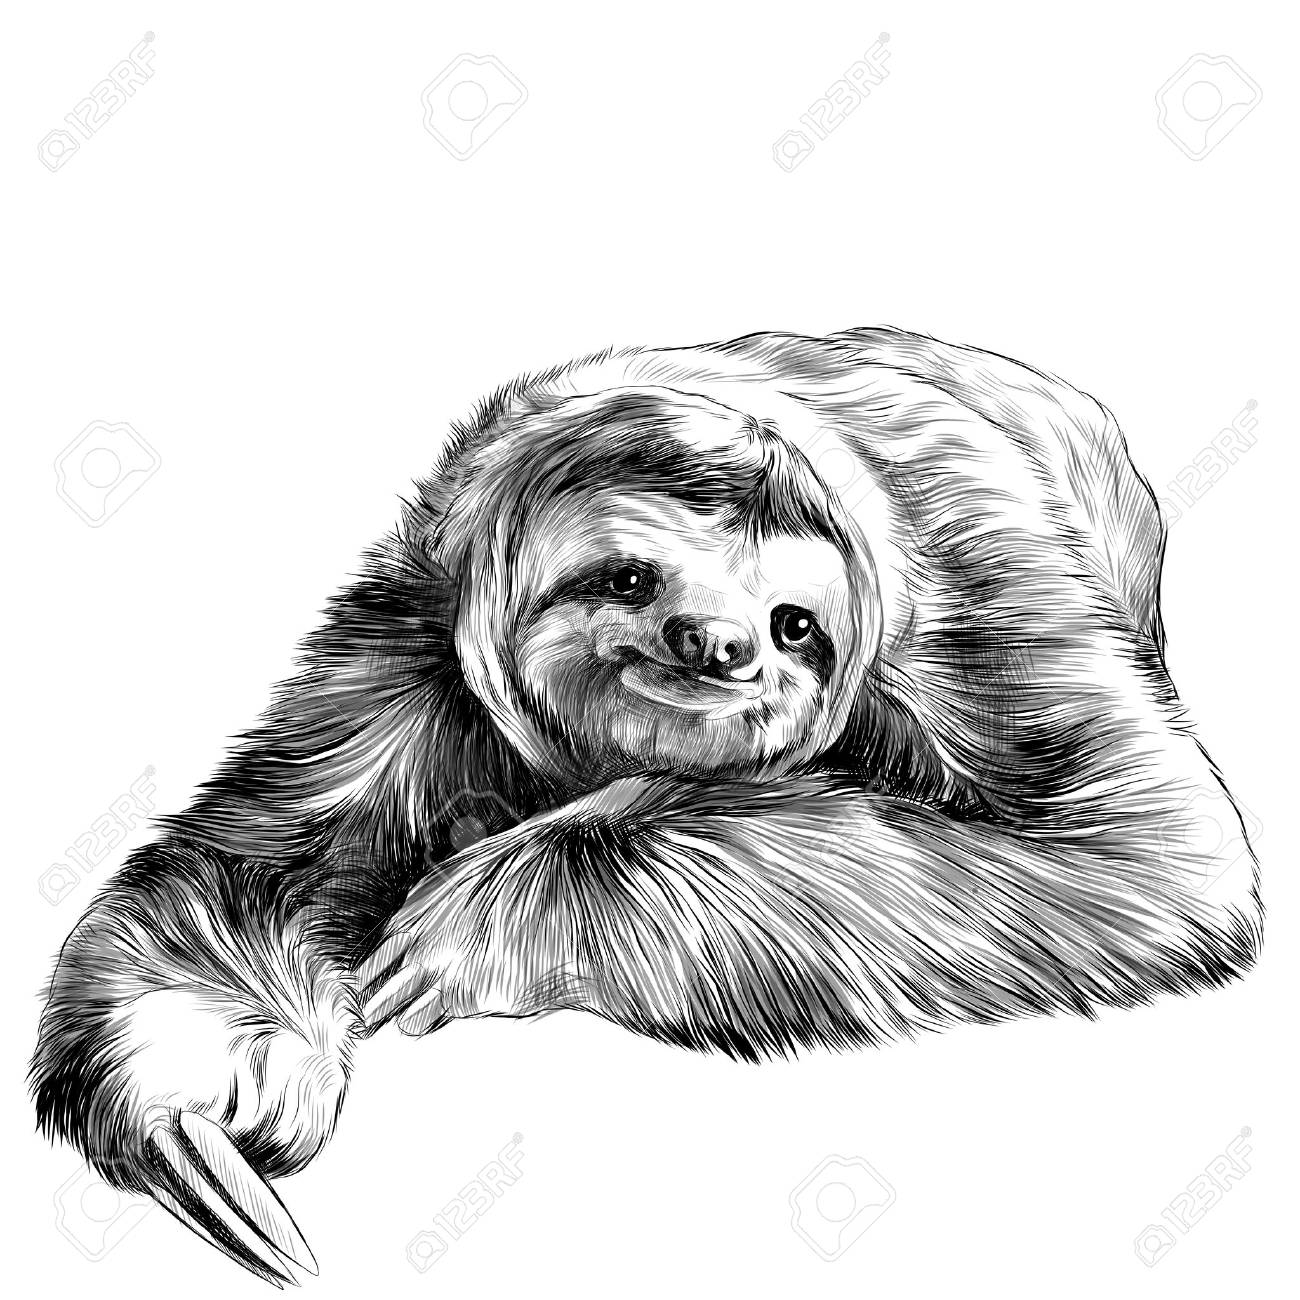 sloth lies with crossed legs, looking right and smiling sweetly, sketch vector graphics black and white drawing - 76041671